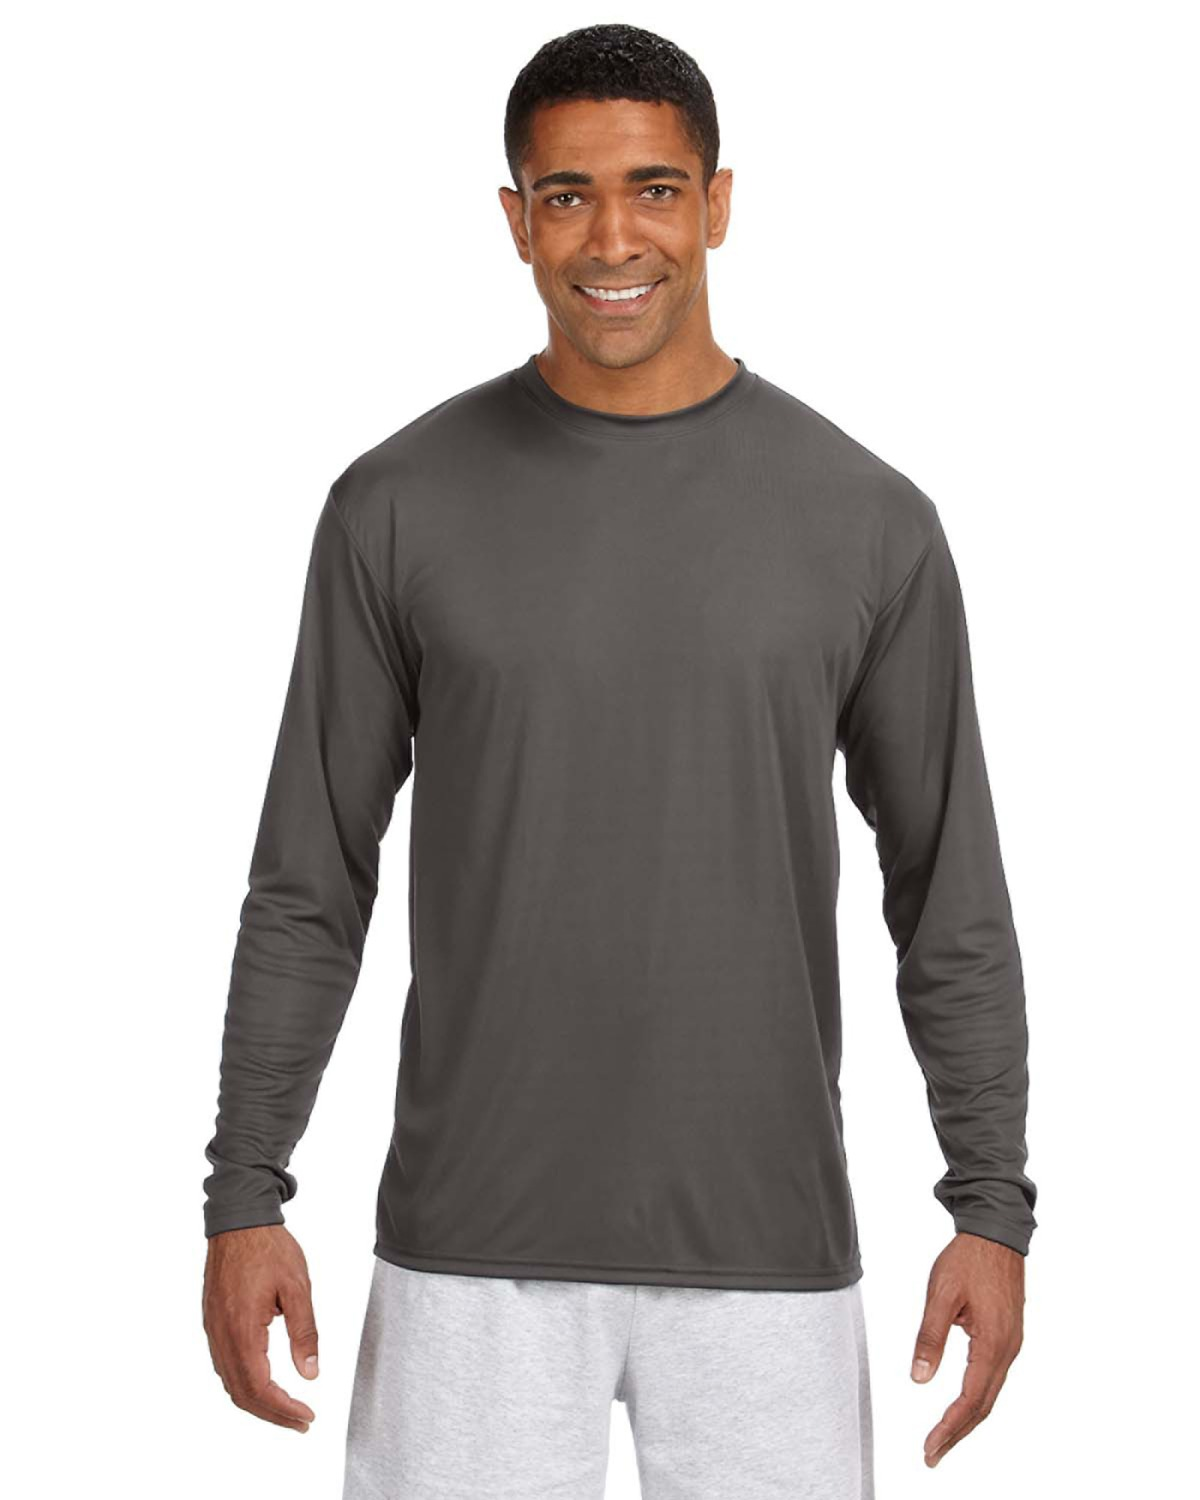 A4 N3165 Men's Long Sleeve T-Shirt